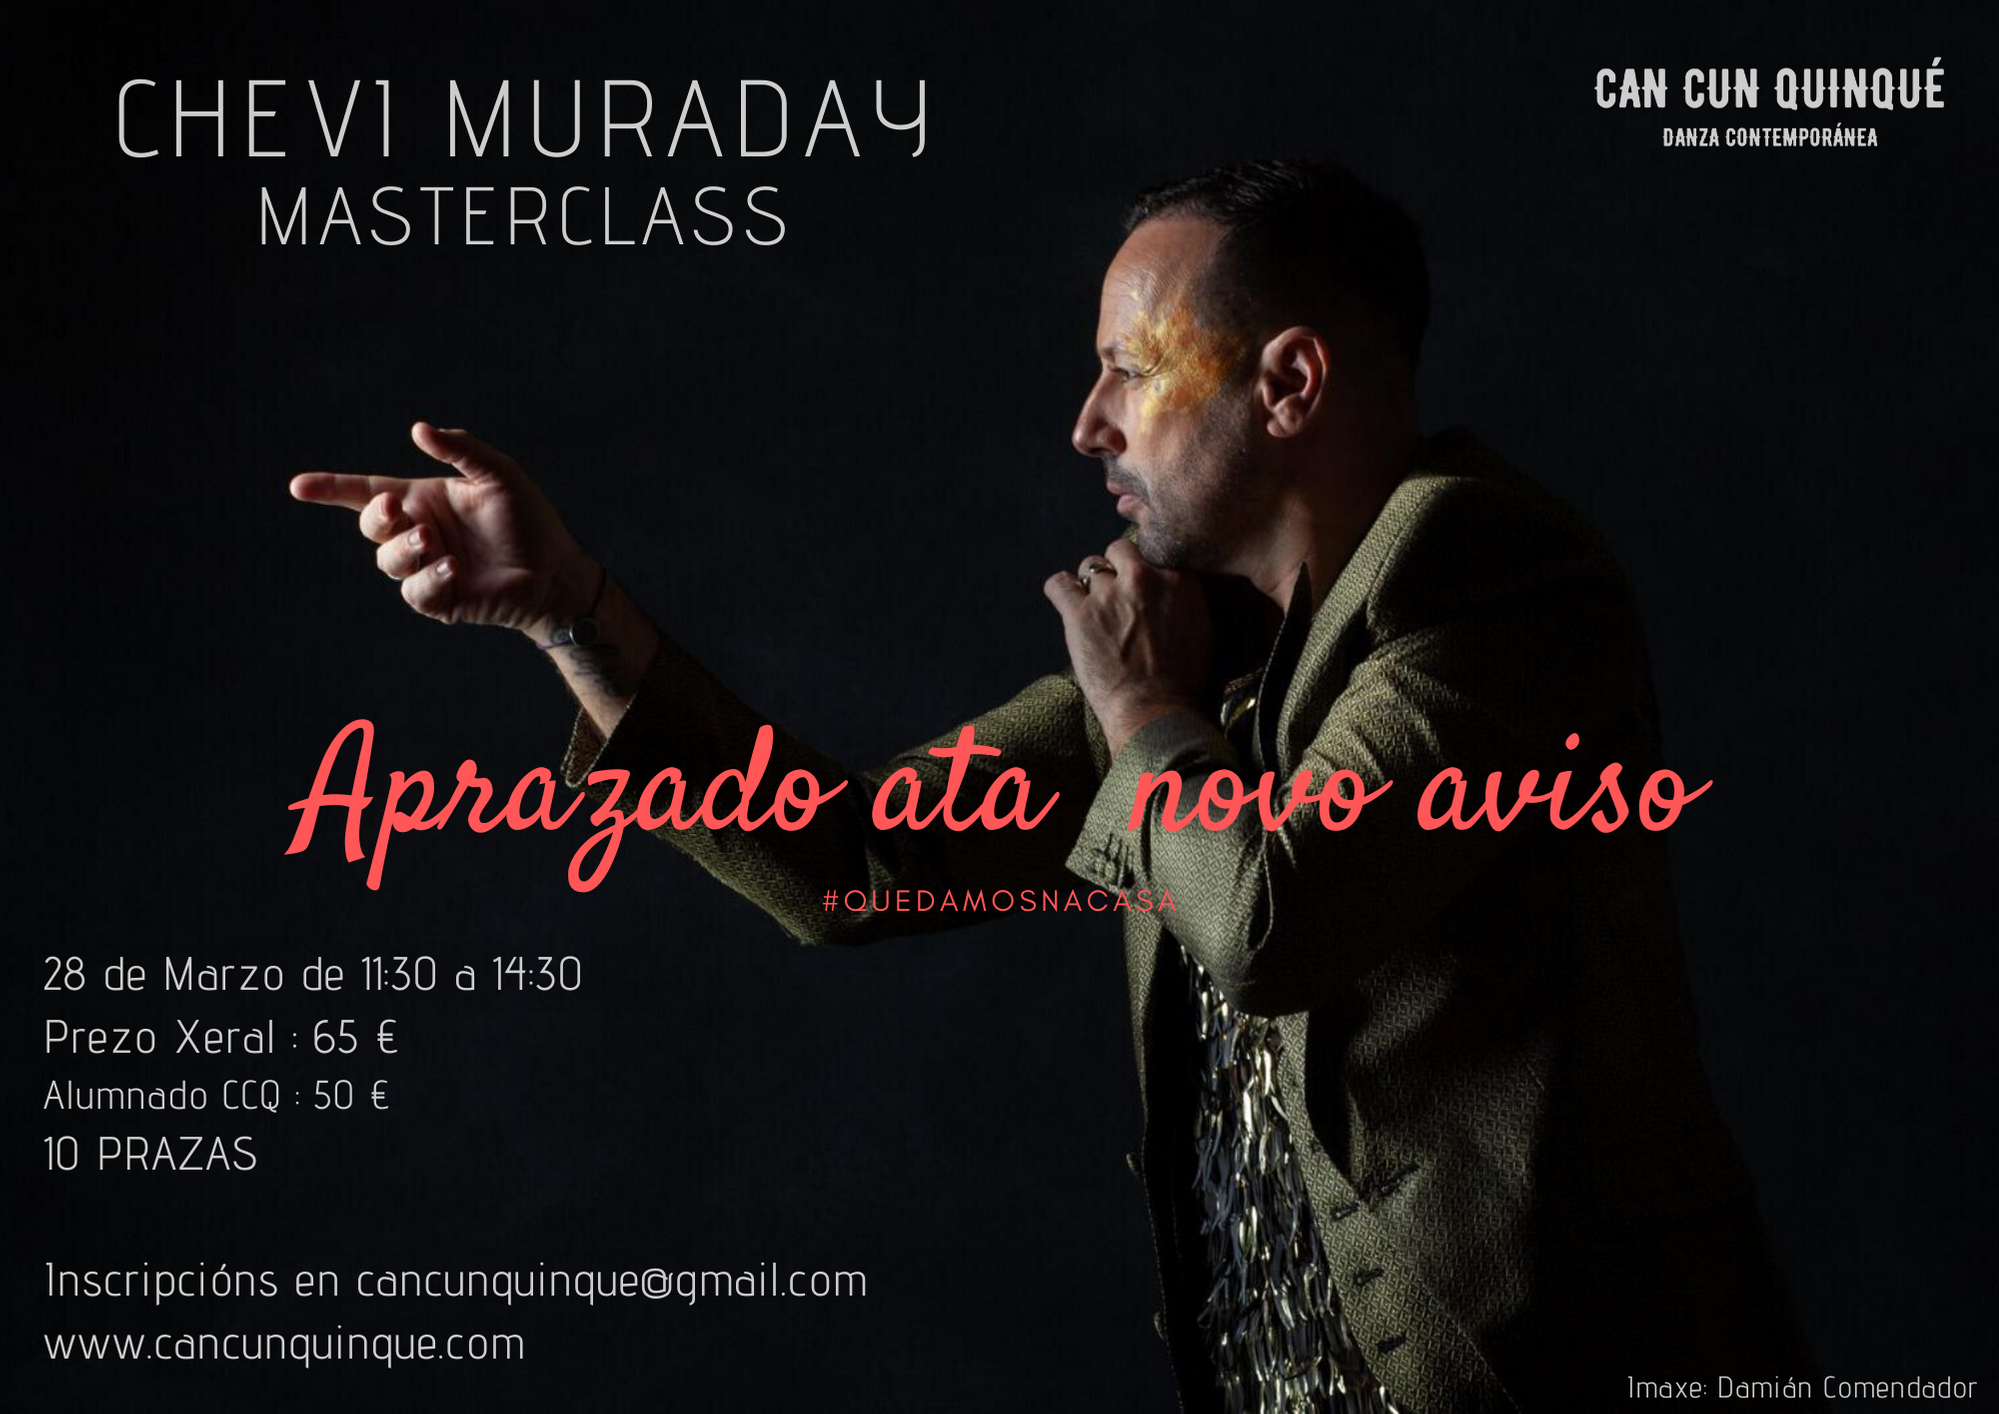 masterclass Chevi Muraday (1)